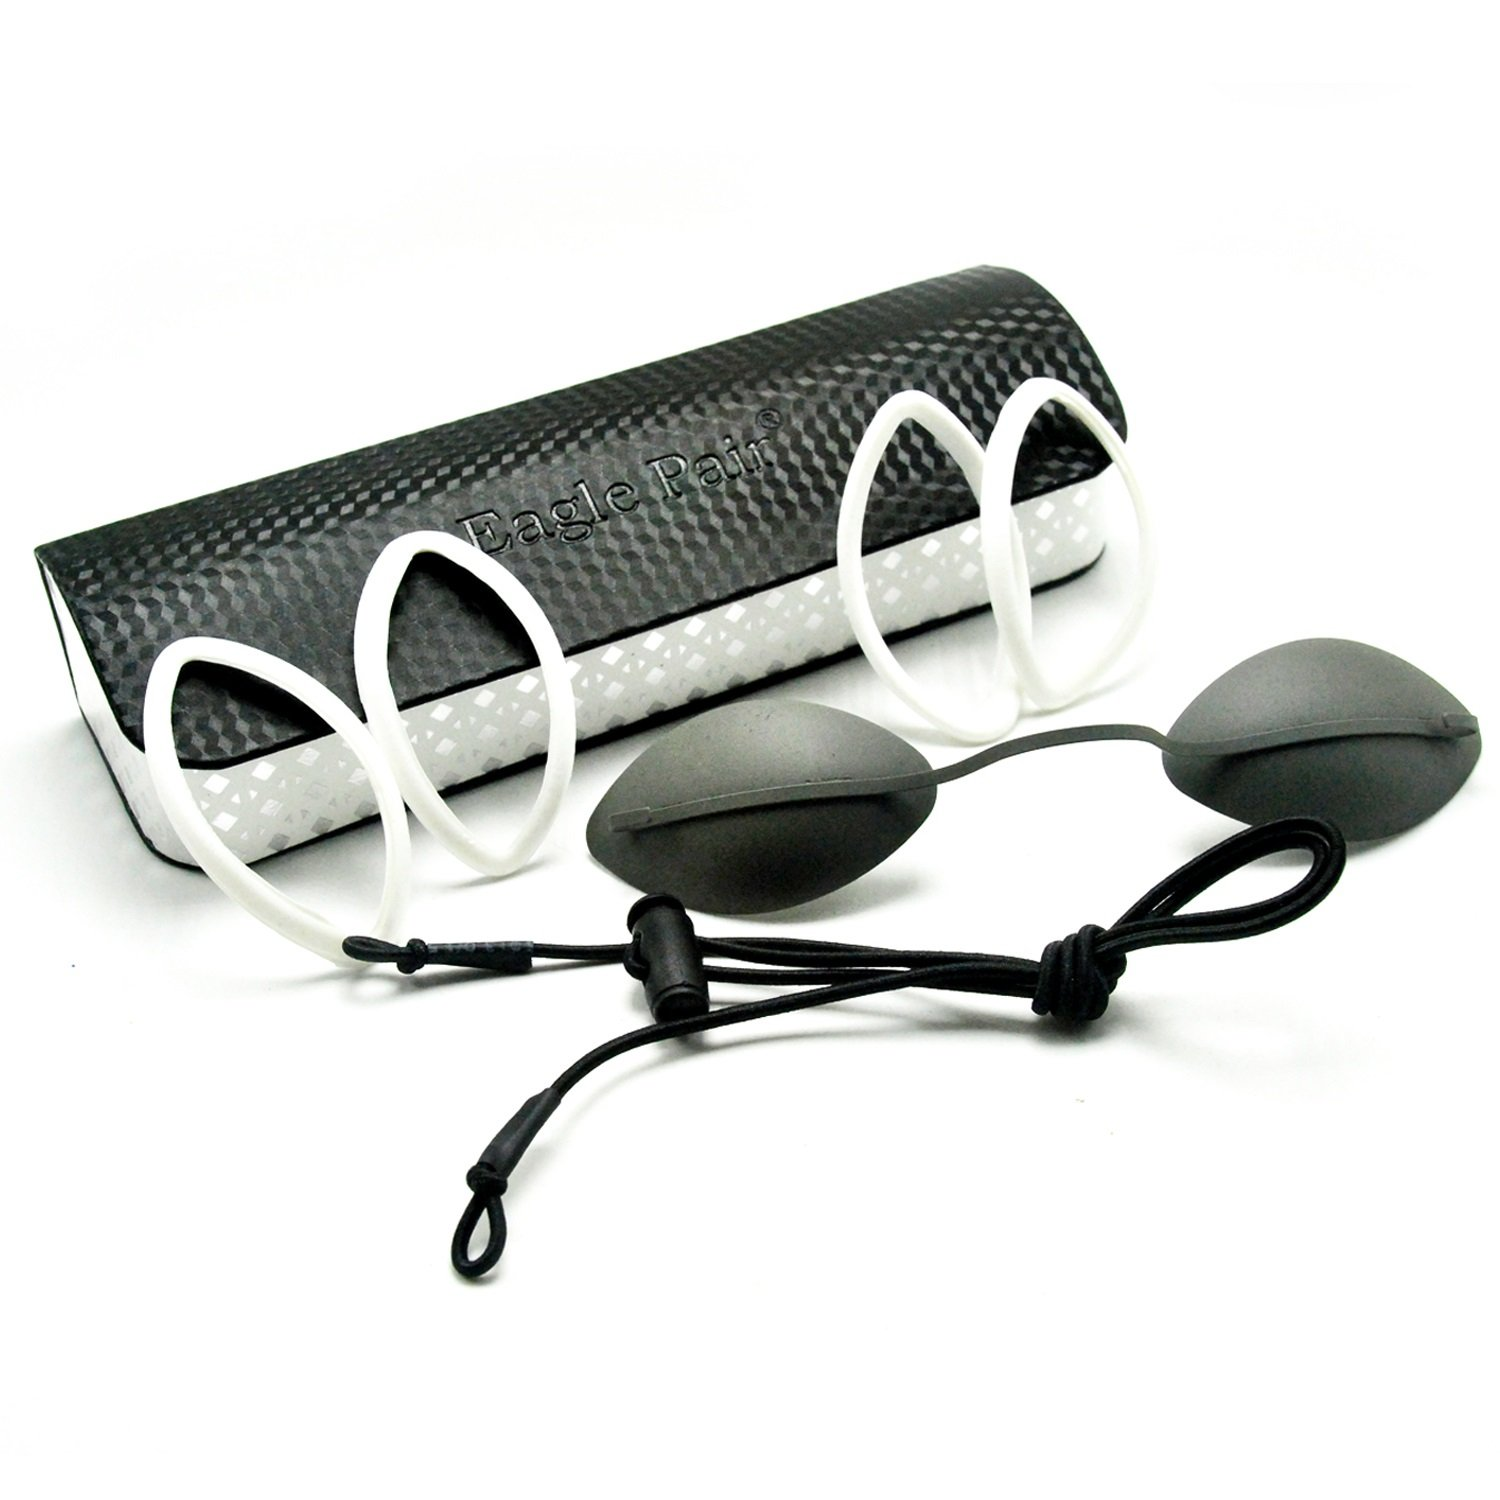 2pcs IPL Protection Eyepatch for Clinic Beauty Laser OD7+ Safety Goggles Stainless Steel Metal